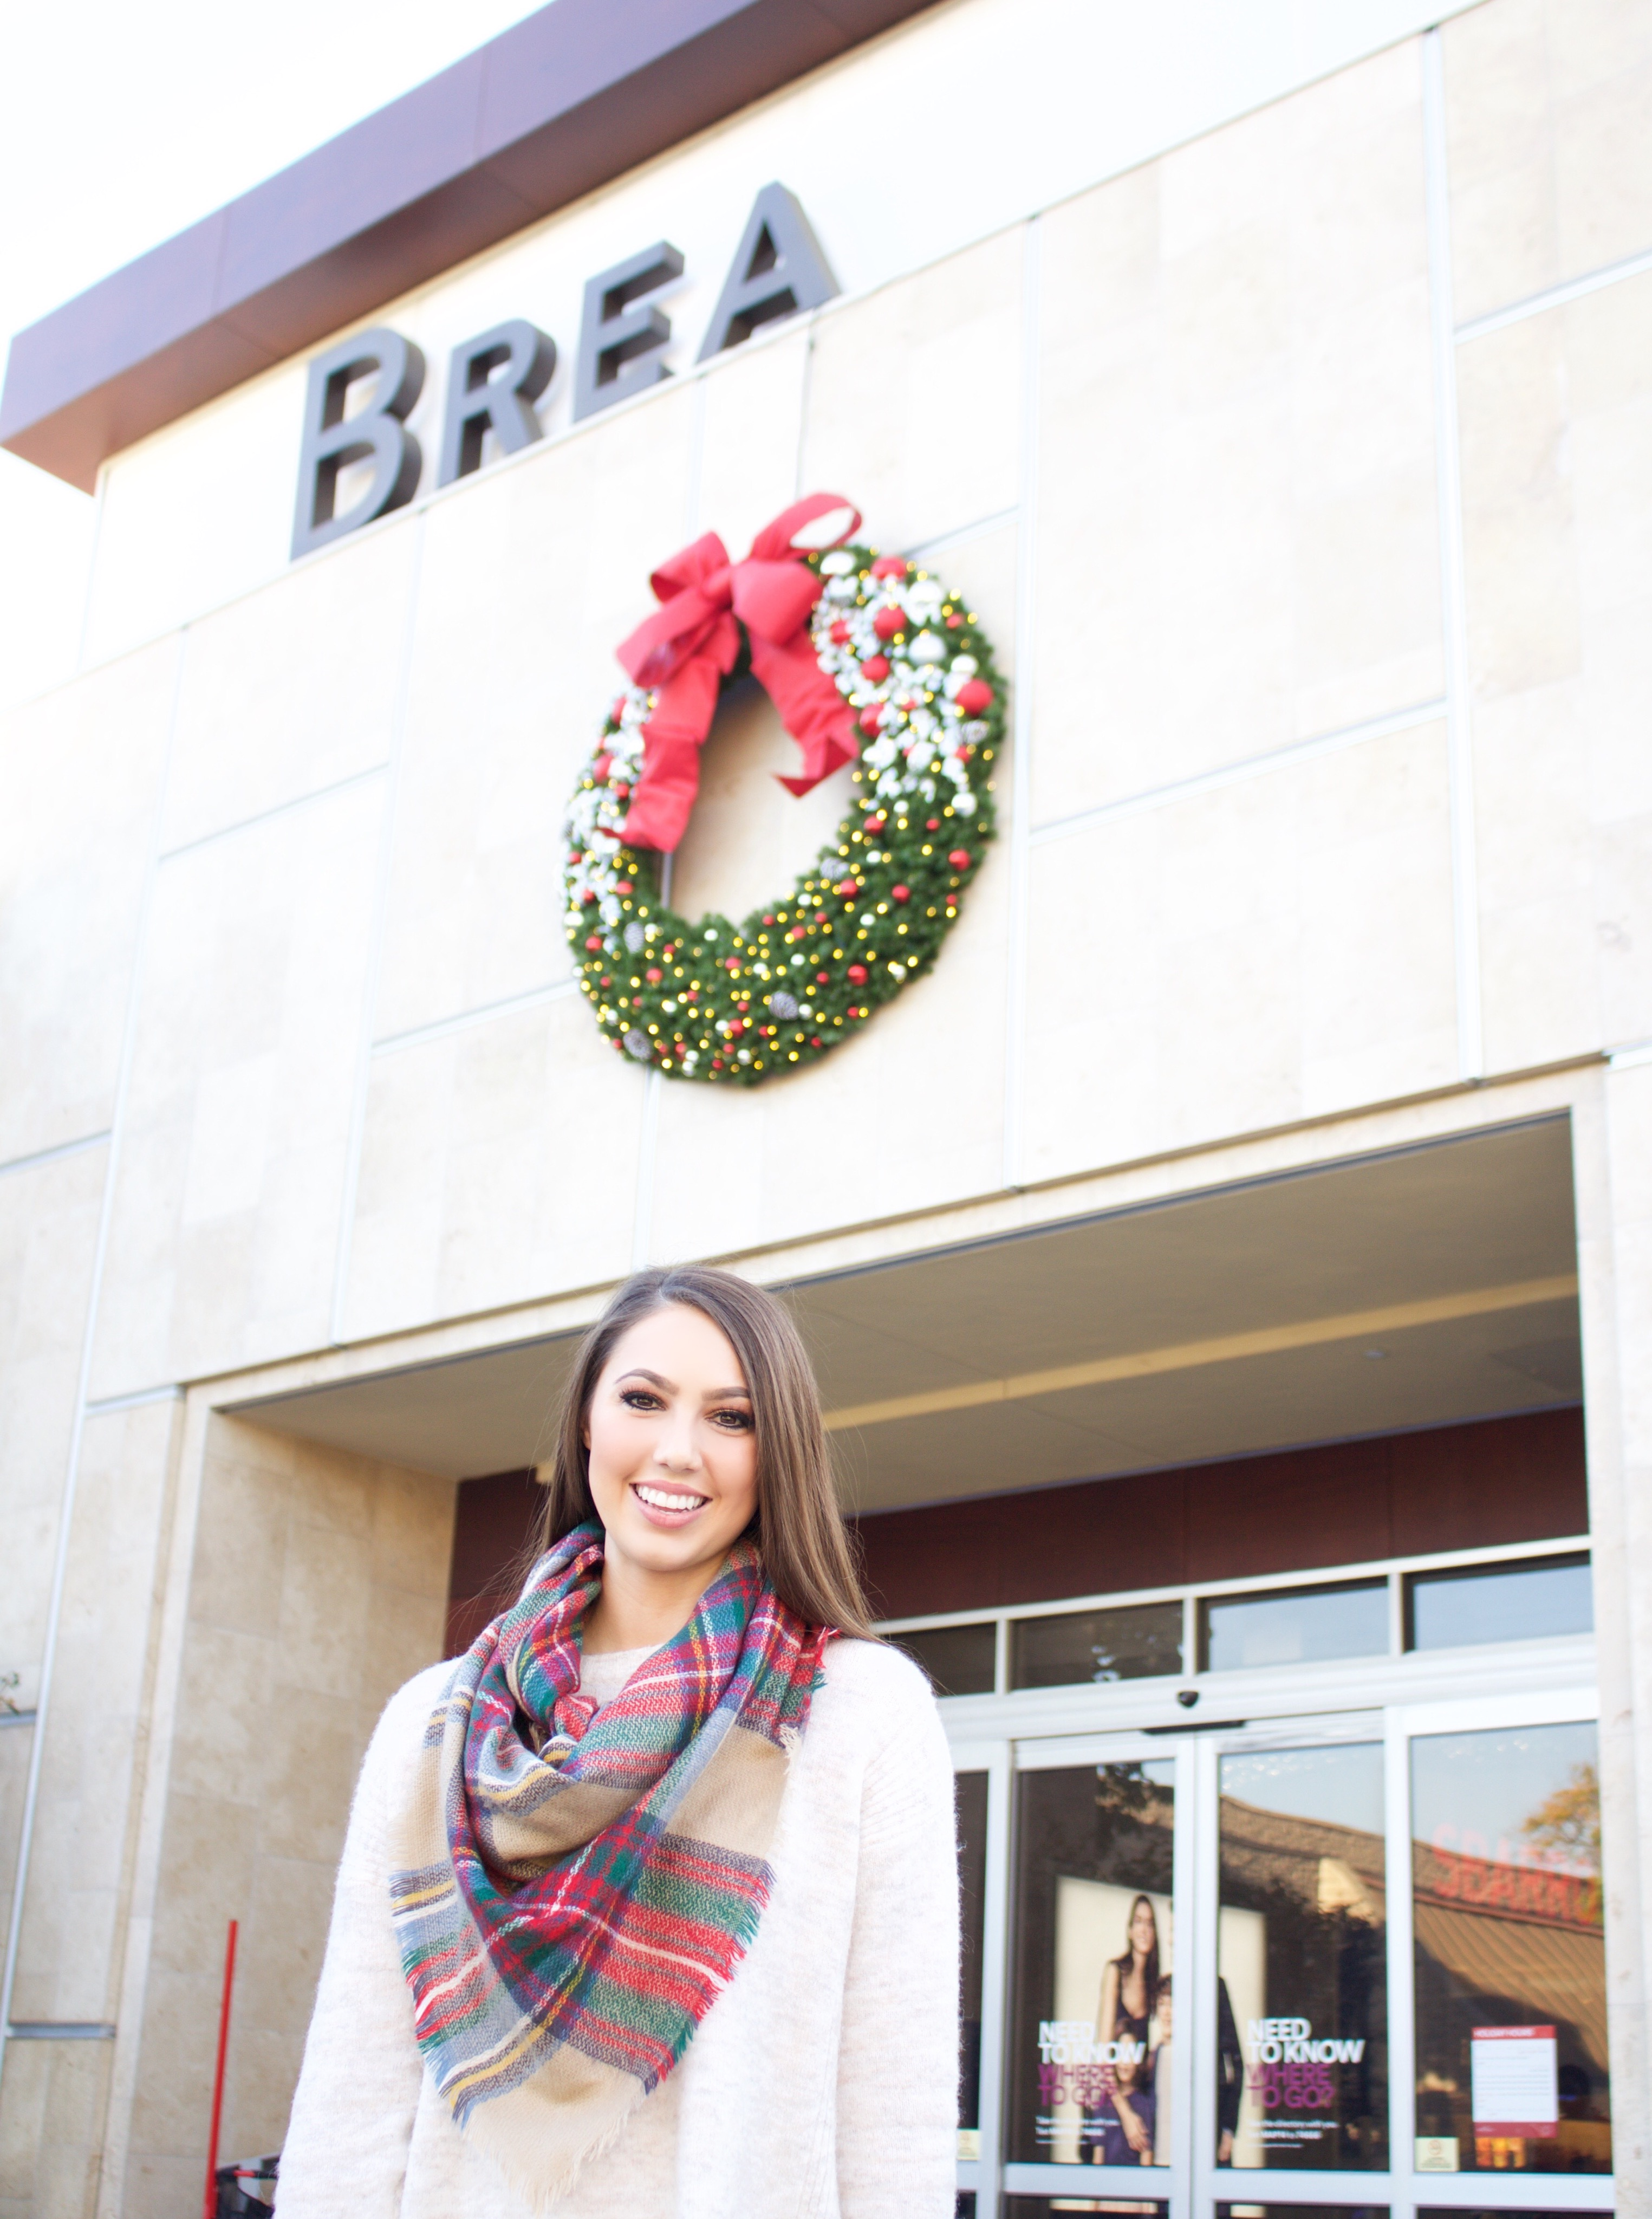 My Styled Life x Brea Mall Millennial Gift Guide